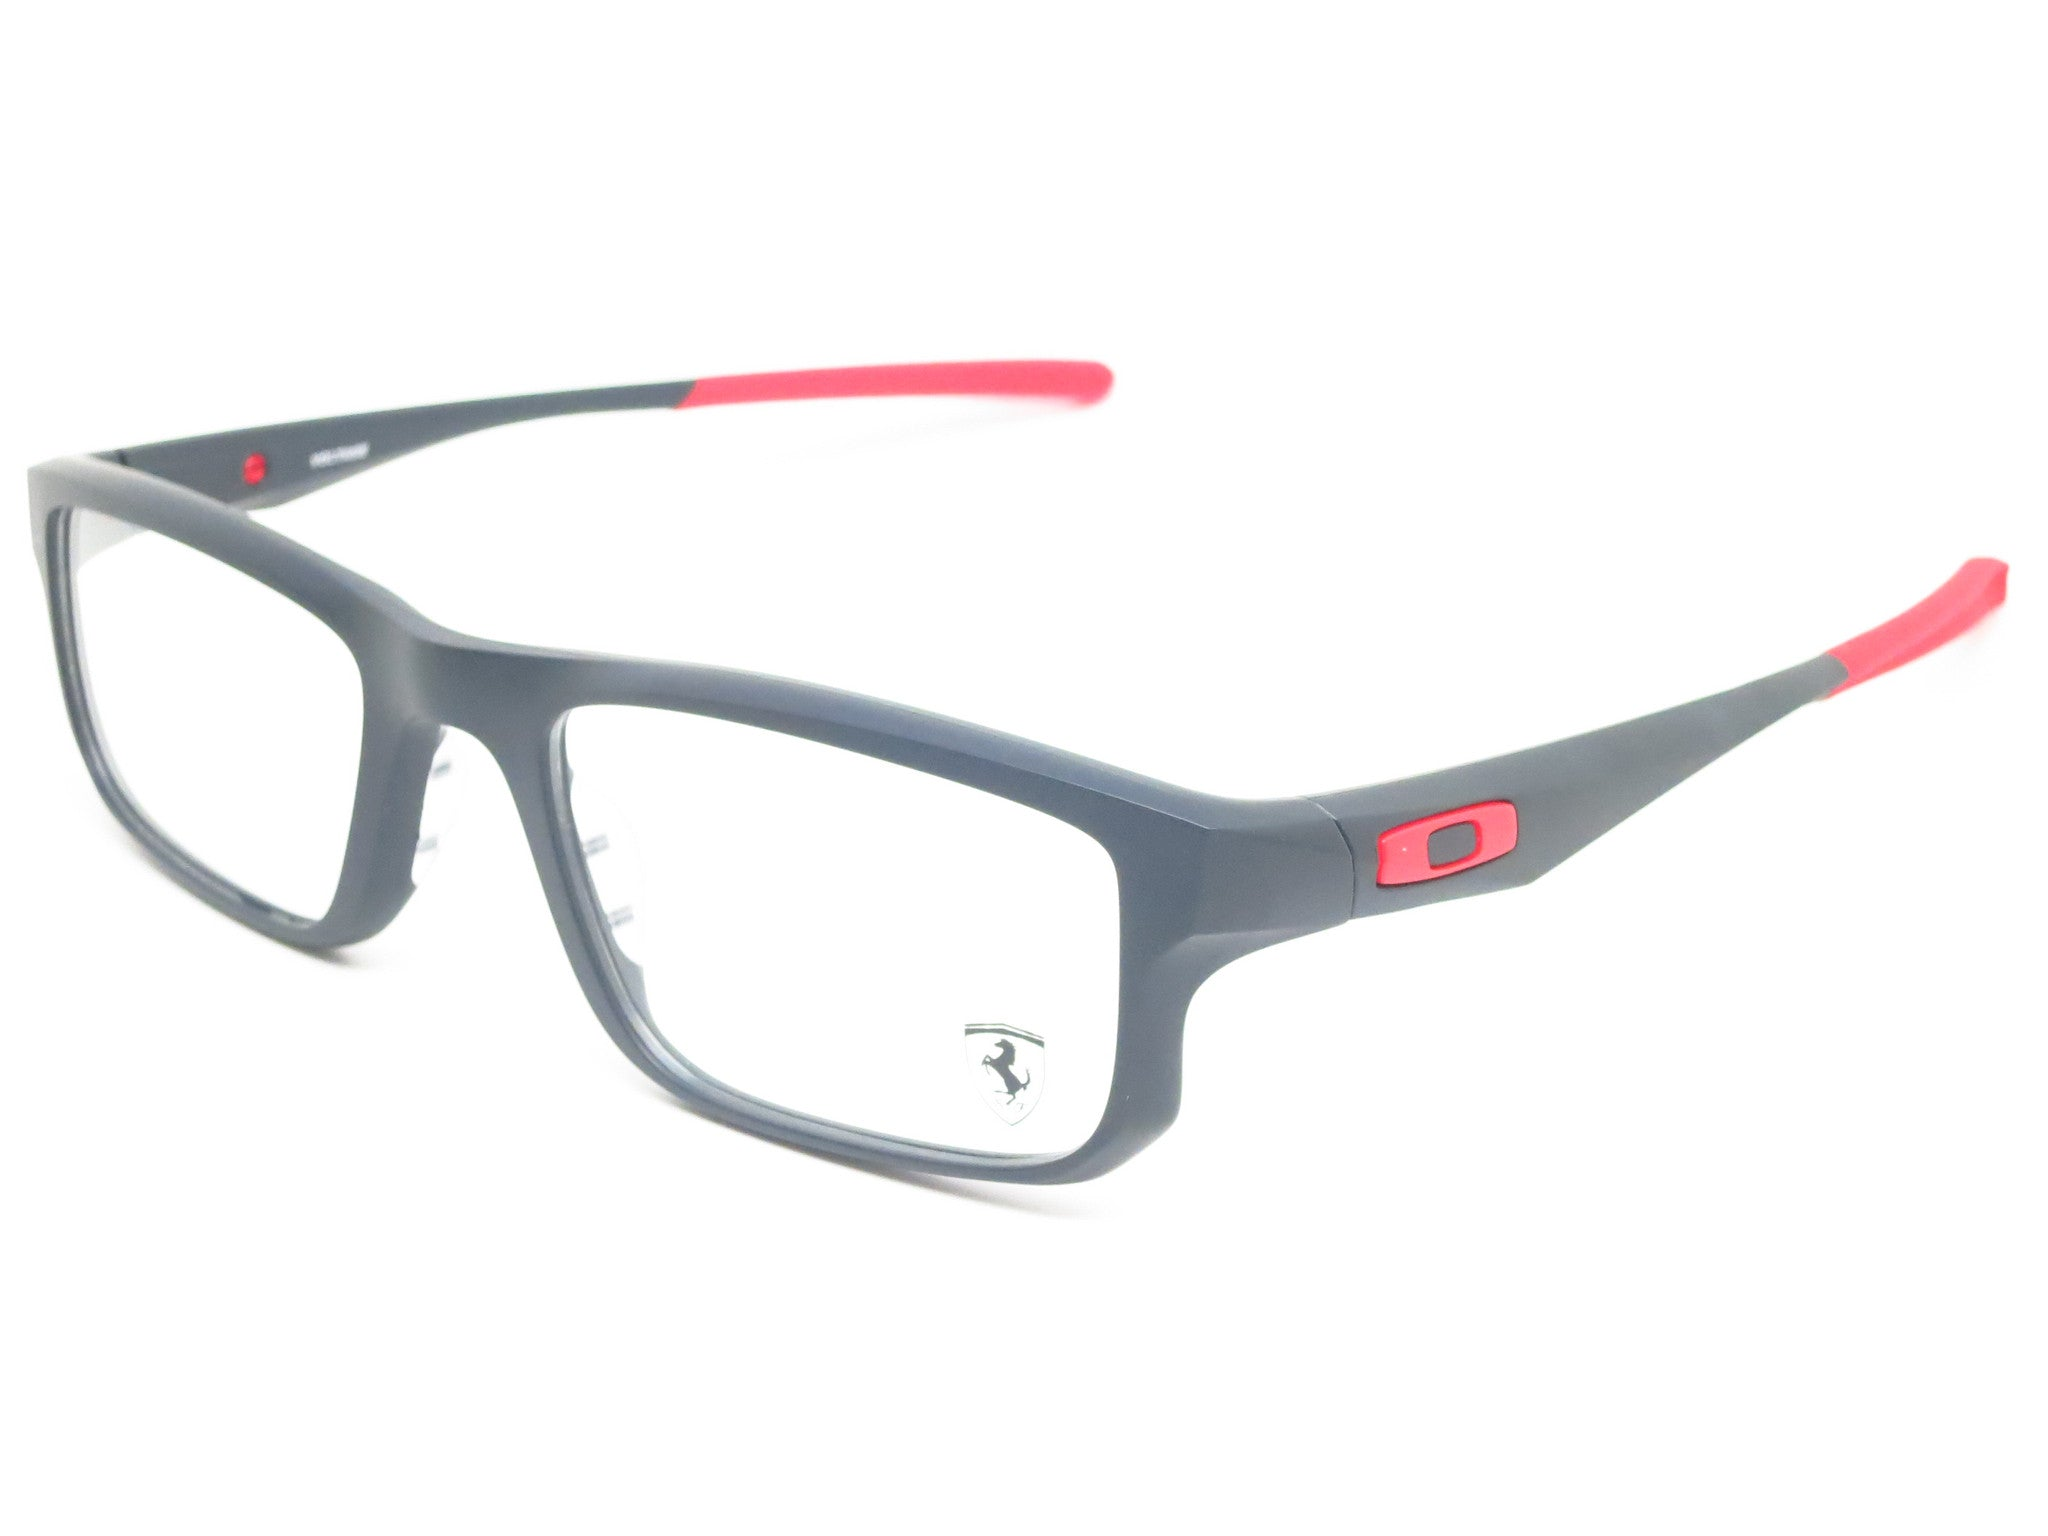 ce66e83b71 Oakley Voltage Scuderia Ferrari OX8049-0753 Satin Black Eyeglasses - Eye  Heart Shades - Oakley ...